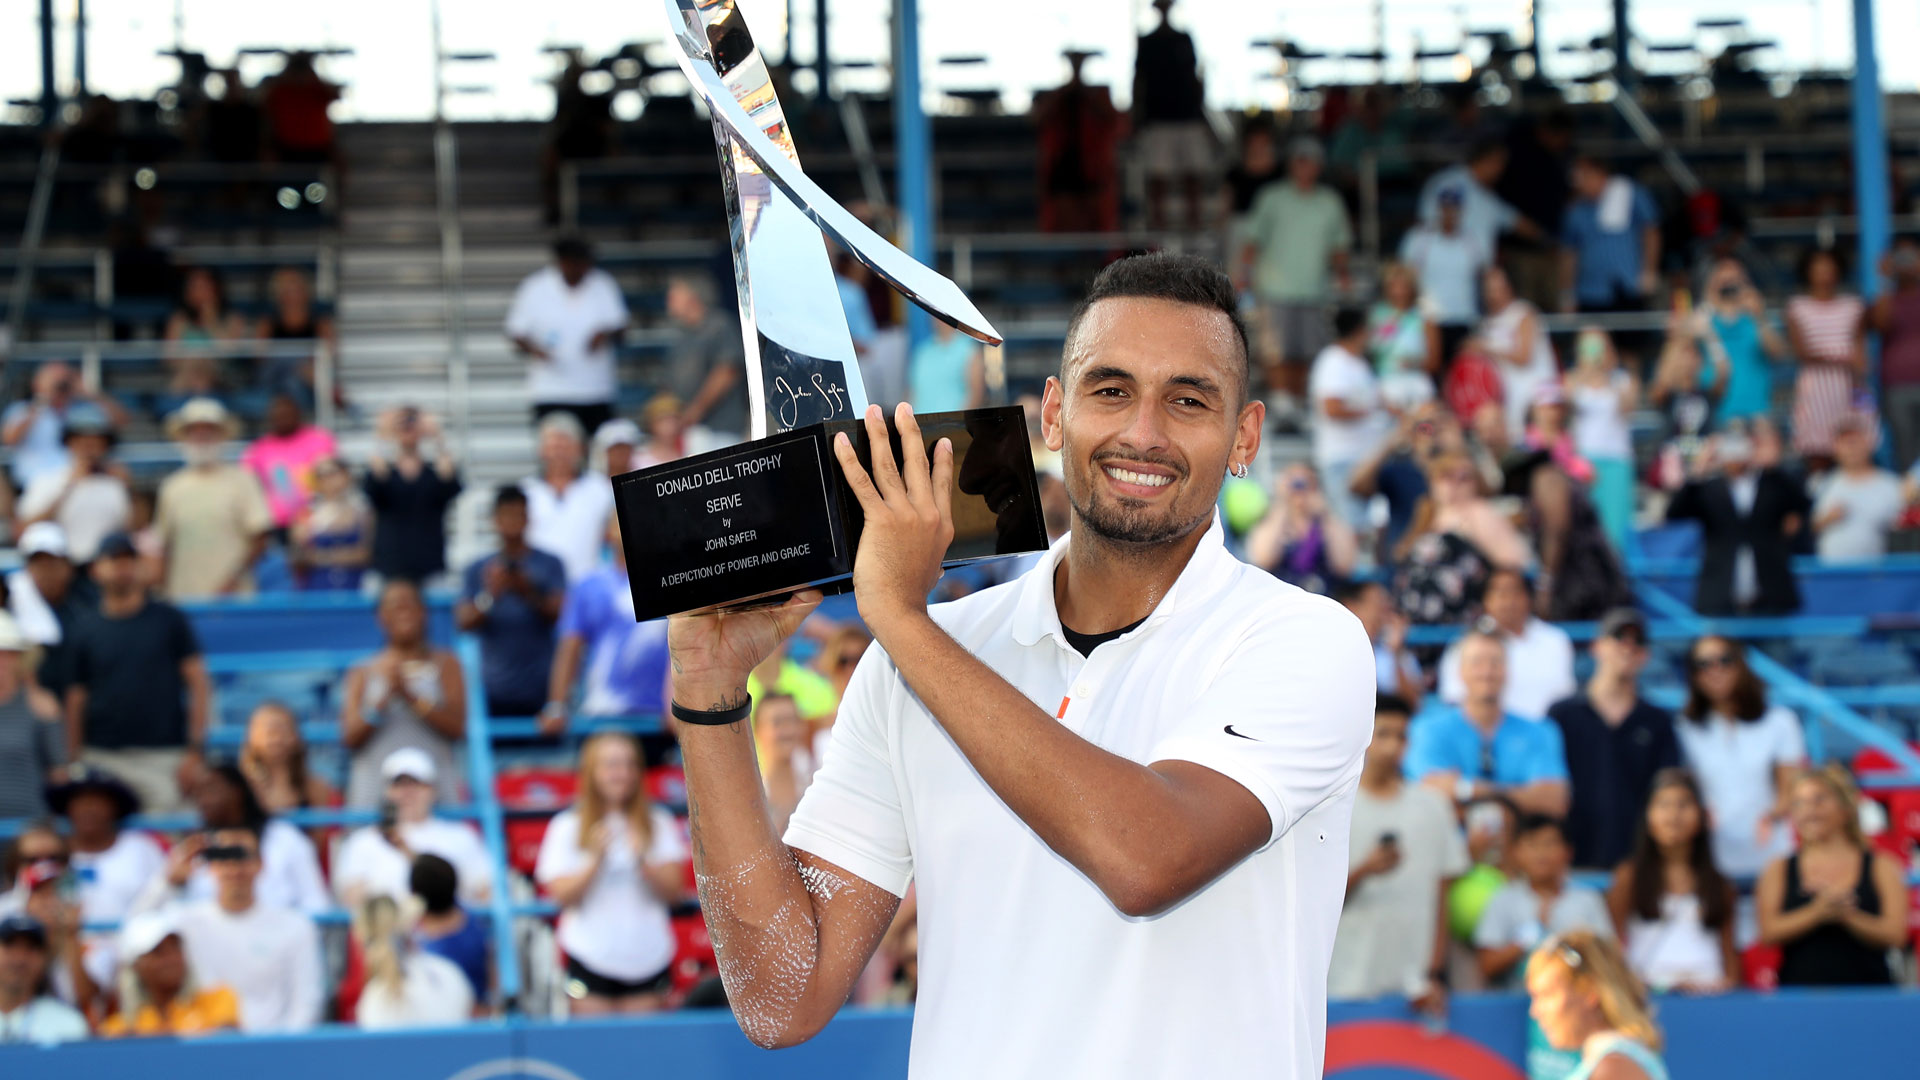 <a href='https://www.atptour.com/en/players/nick-kyrgios/ke17/overview'>Nick Kyrgios</a> holds the winner's trophy in Washington 2019